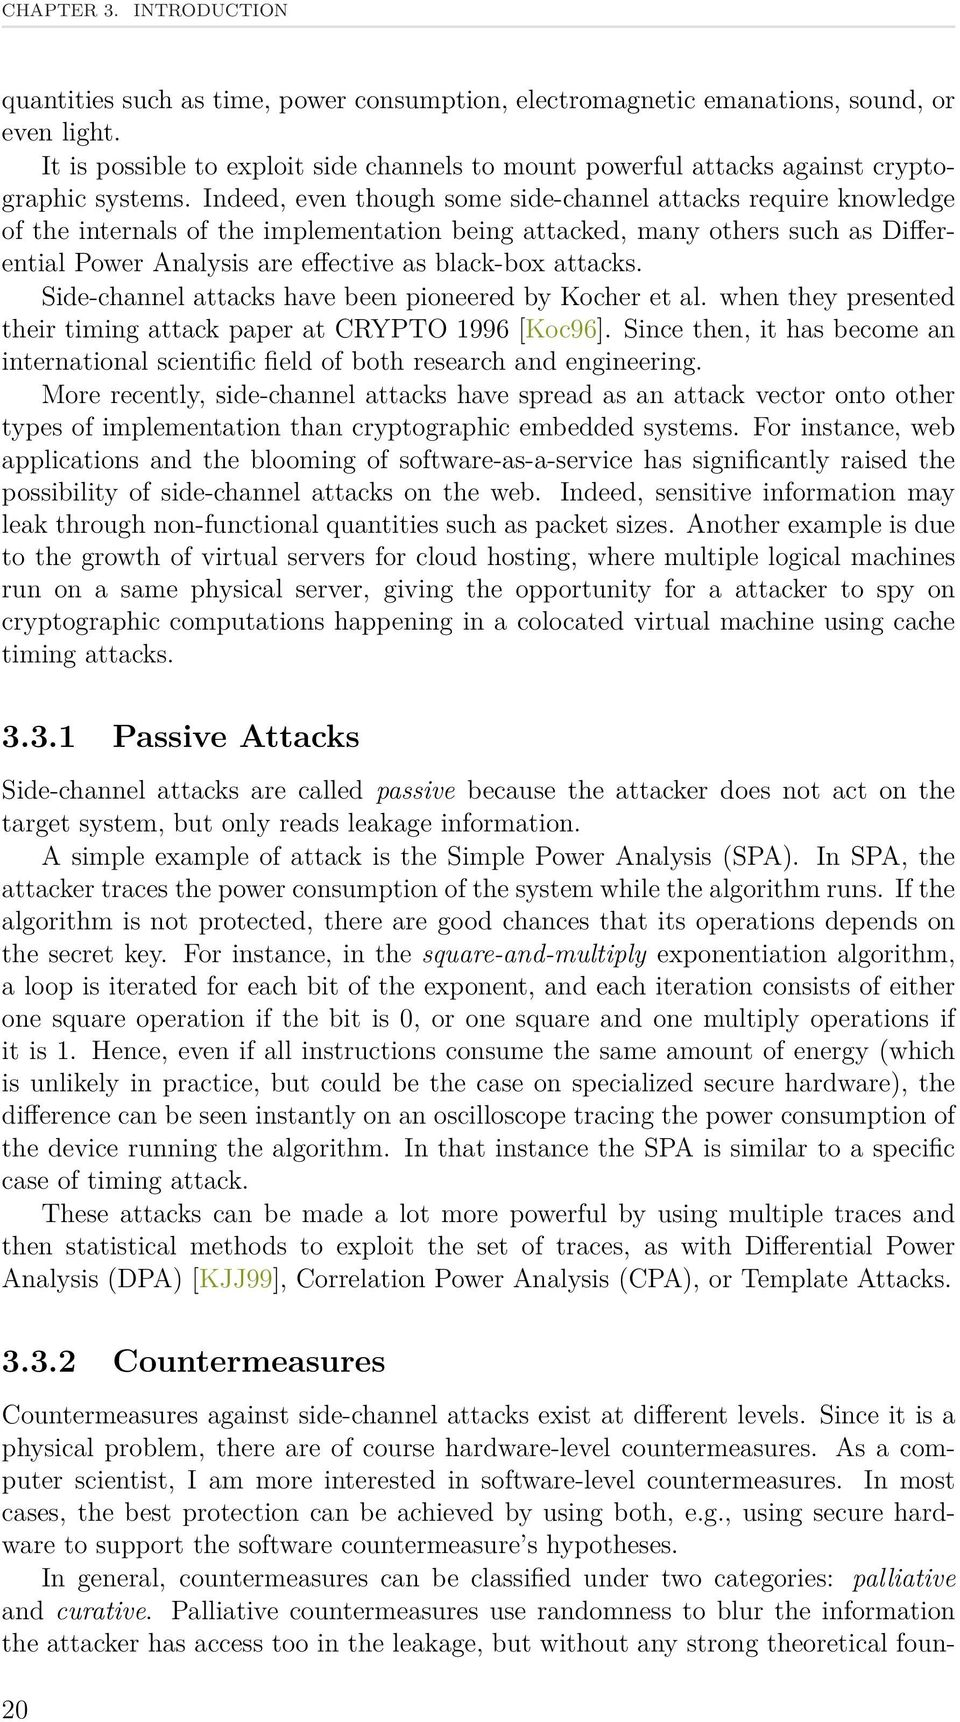 Indeed, even though some side-channel attacks require knowledge of the internals of the implementation being attacked, many others such as Differential Power Analysis are effective as black-box